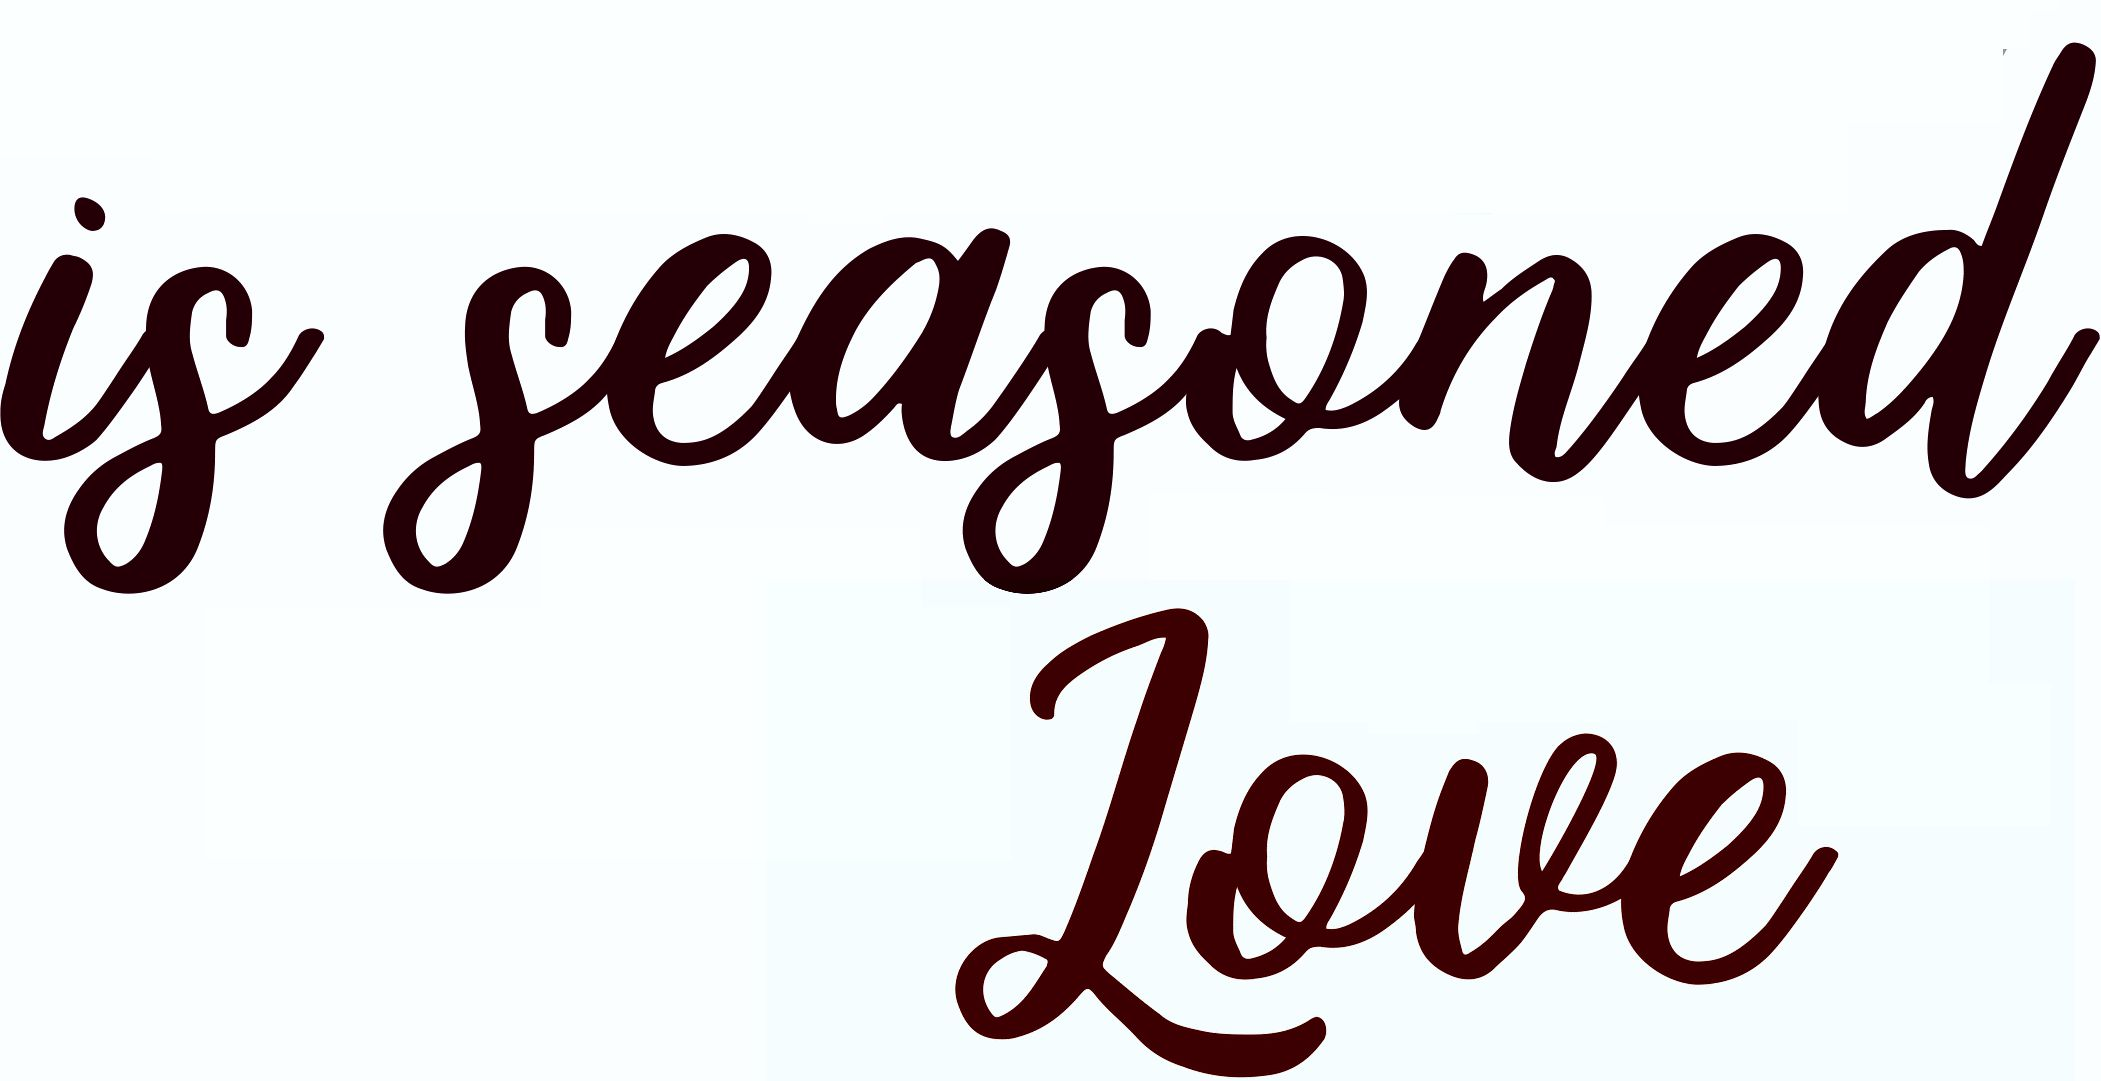 Trying To Identify This Script Font Text Says Is Seasoned Love Lower Case S Hangs Below The Line Much Like Letter G Ive Tried What